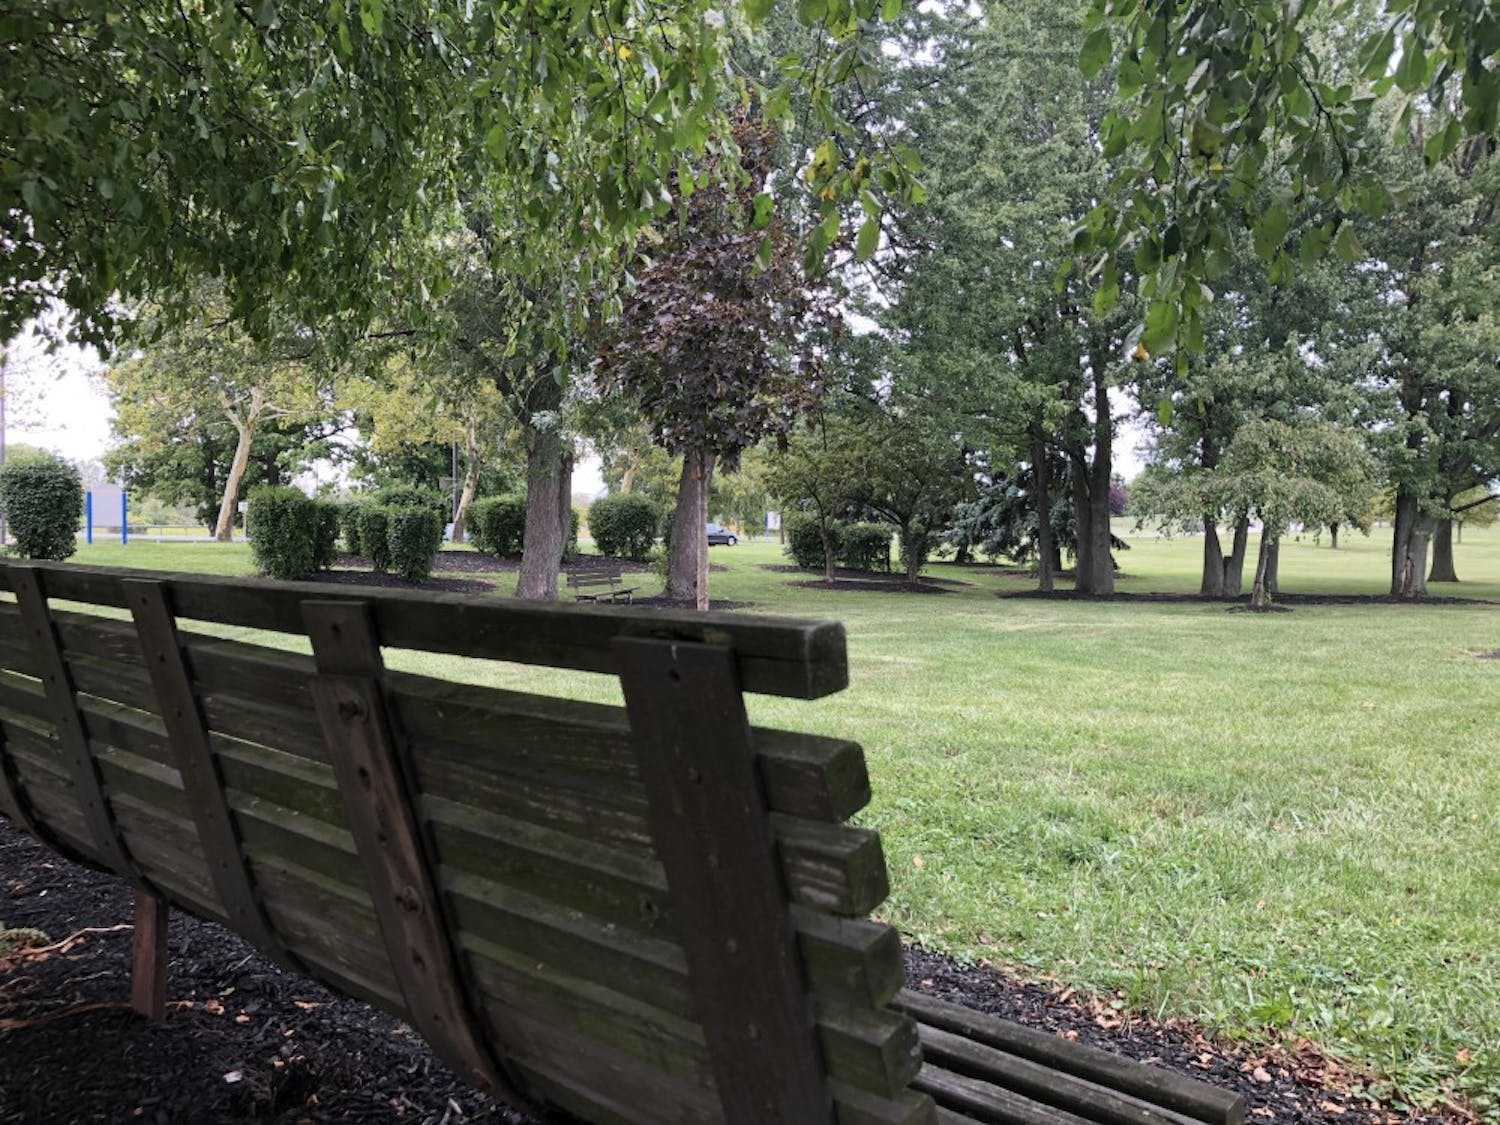 """The Puffer Grove, located on North Campus, is one of a number of """"secret"""" locations students don't tend to use. The grove features a moderate display of environmental growth, and has shades of serenity despite the nearby highway."""